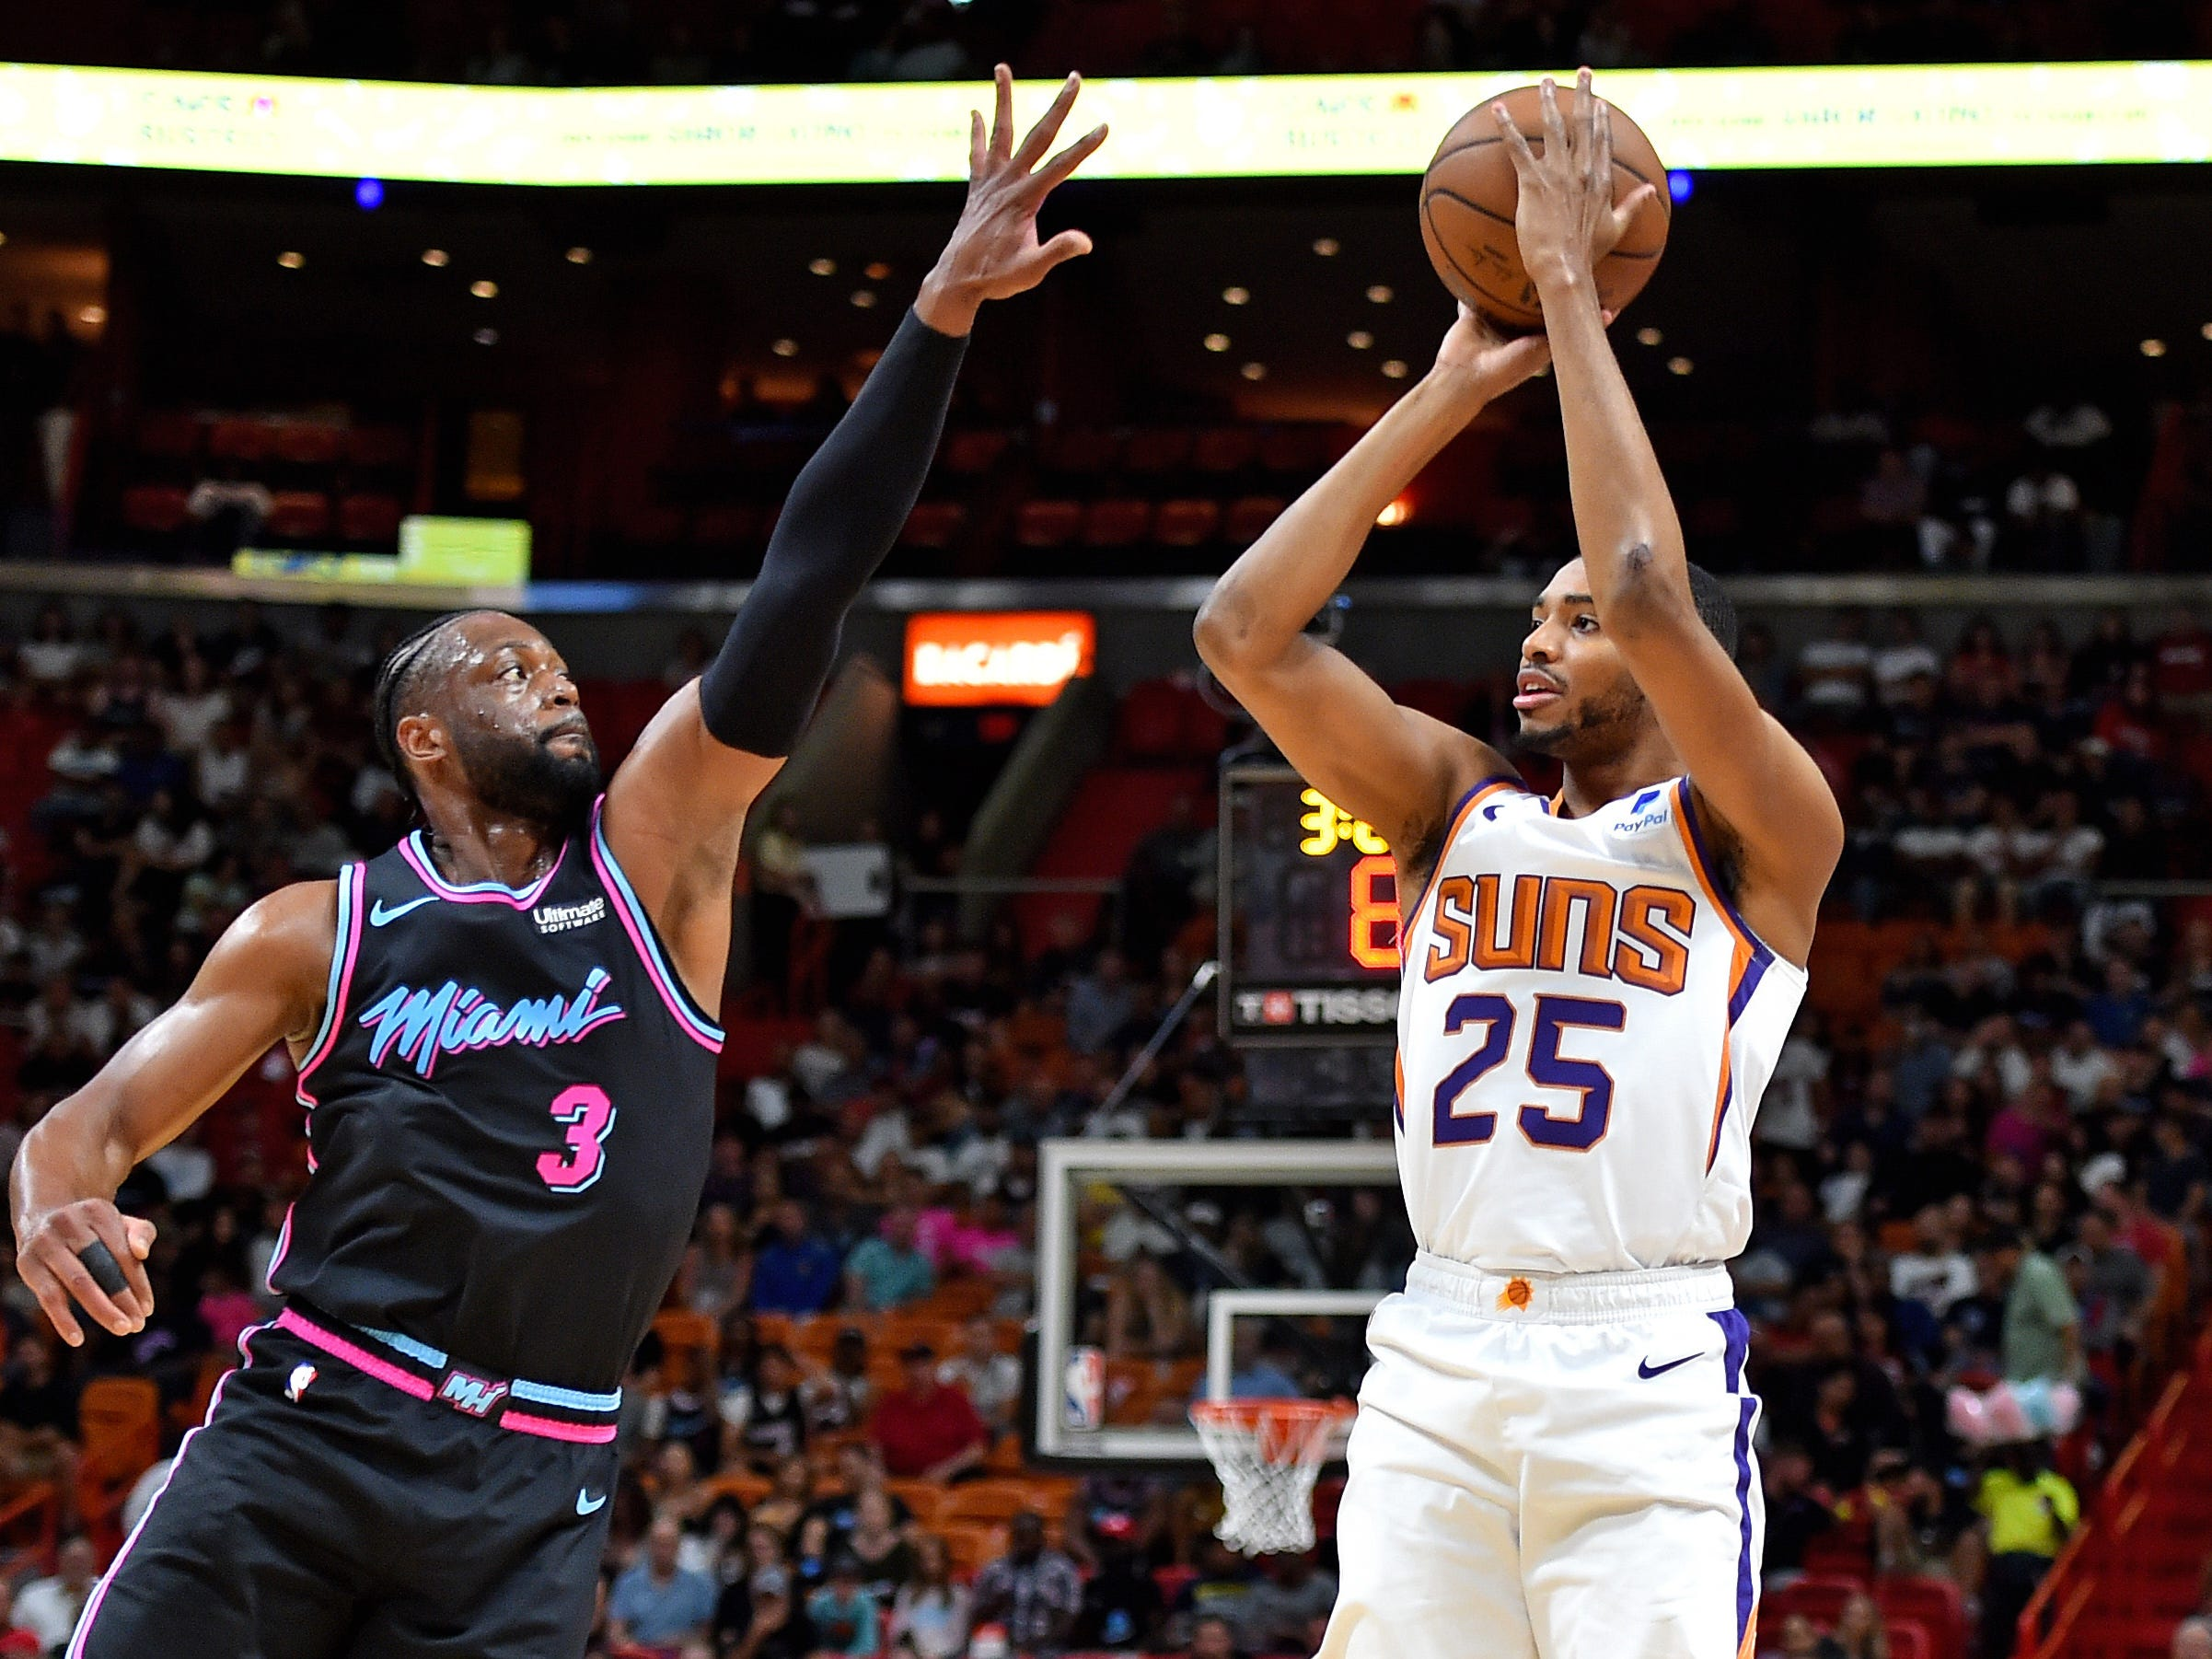 Feb 25, 2019; Miami, FL, USA; Miami Heat guard Dwyane Wade (3) applies pressure to Phoenix Suns forward Mikal Bridges (25) during the first half at American Airlines Arena. Mandatory Credit: Steve Mitchell-USA TODAY Sports